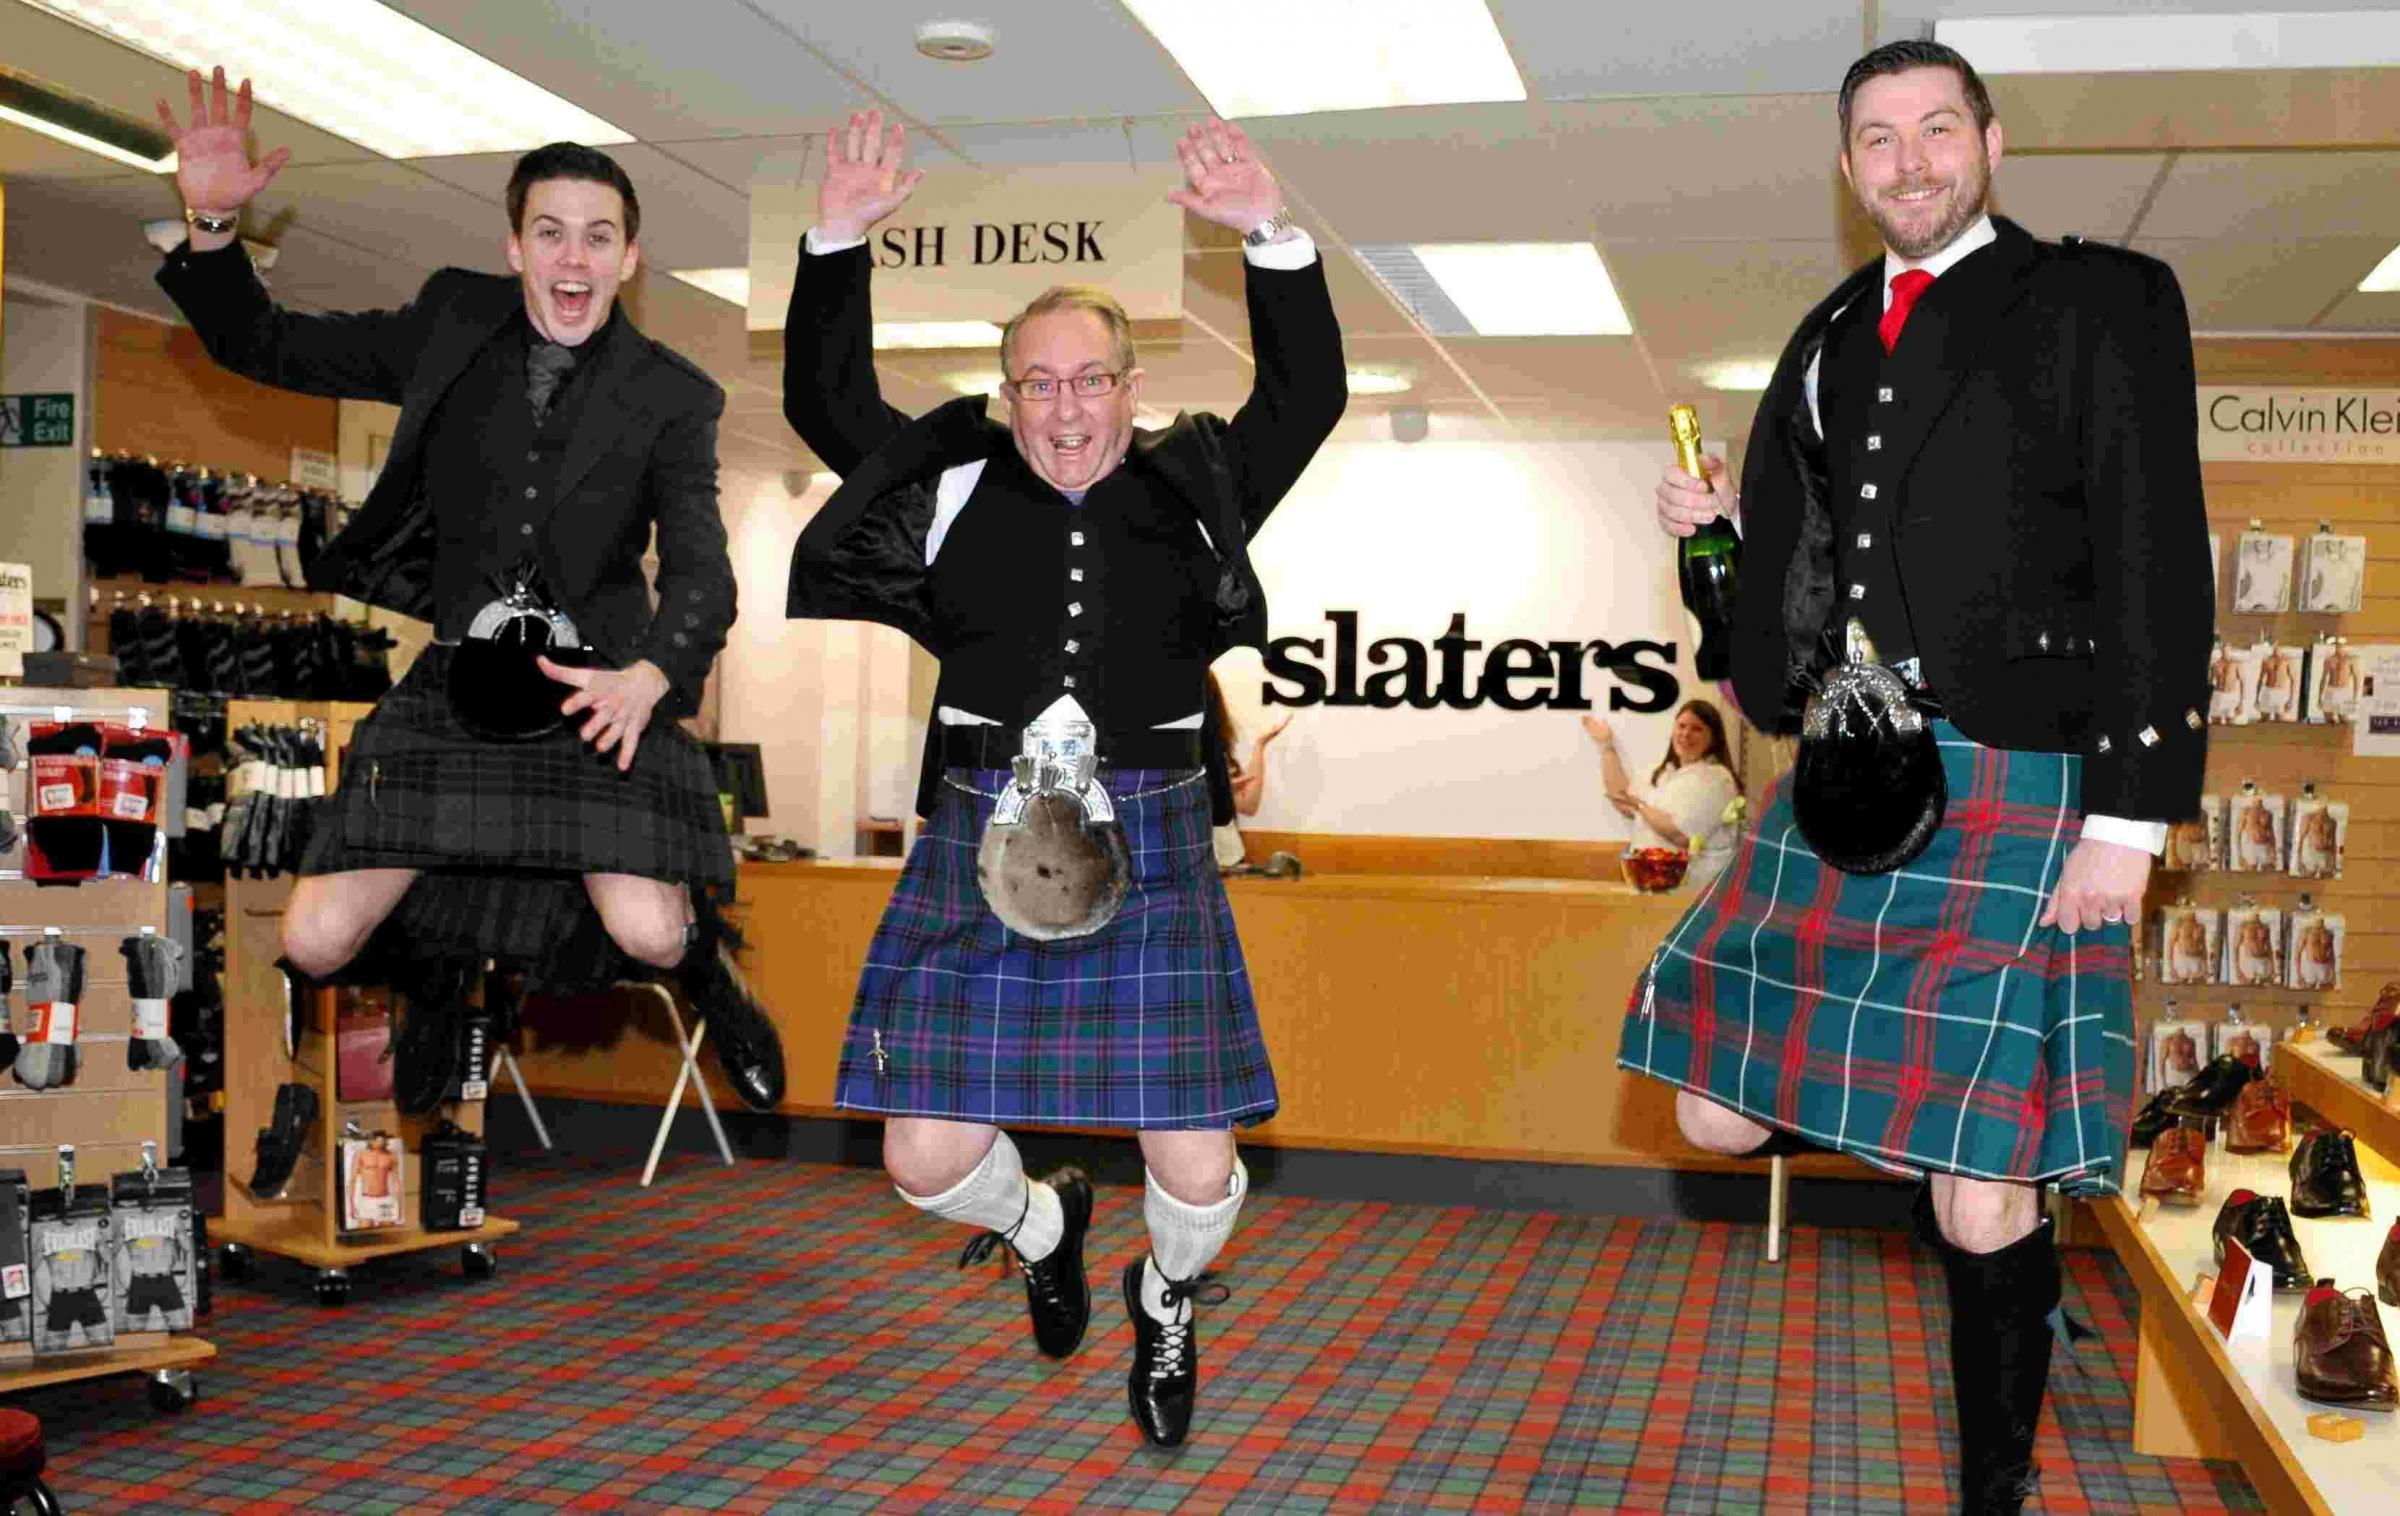 L-R: James McKenzie, Peter John and Thomas Bebb celebrate Slaters' 10 th anniversary of being in Basingstoke